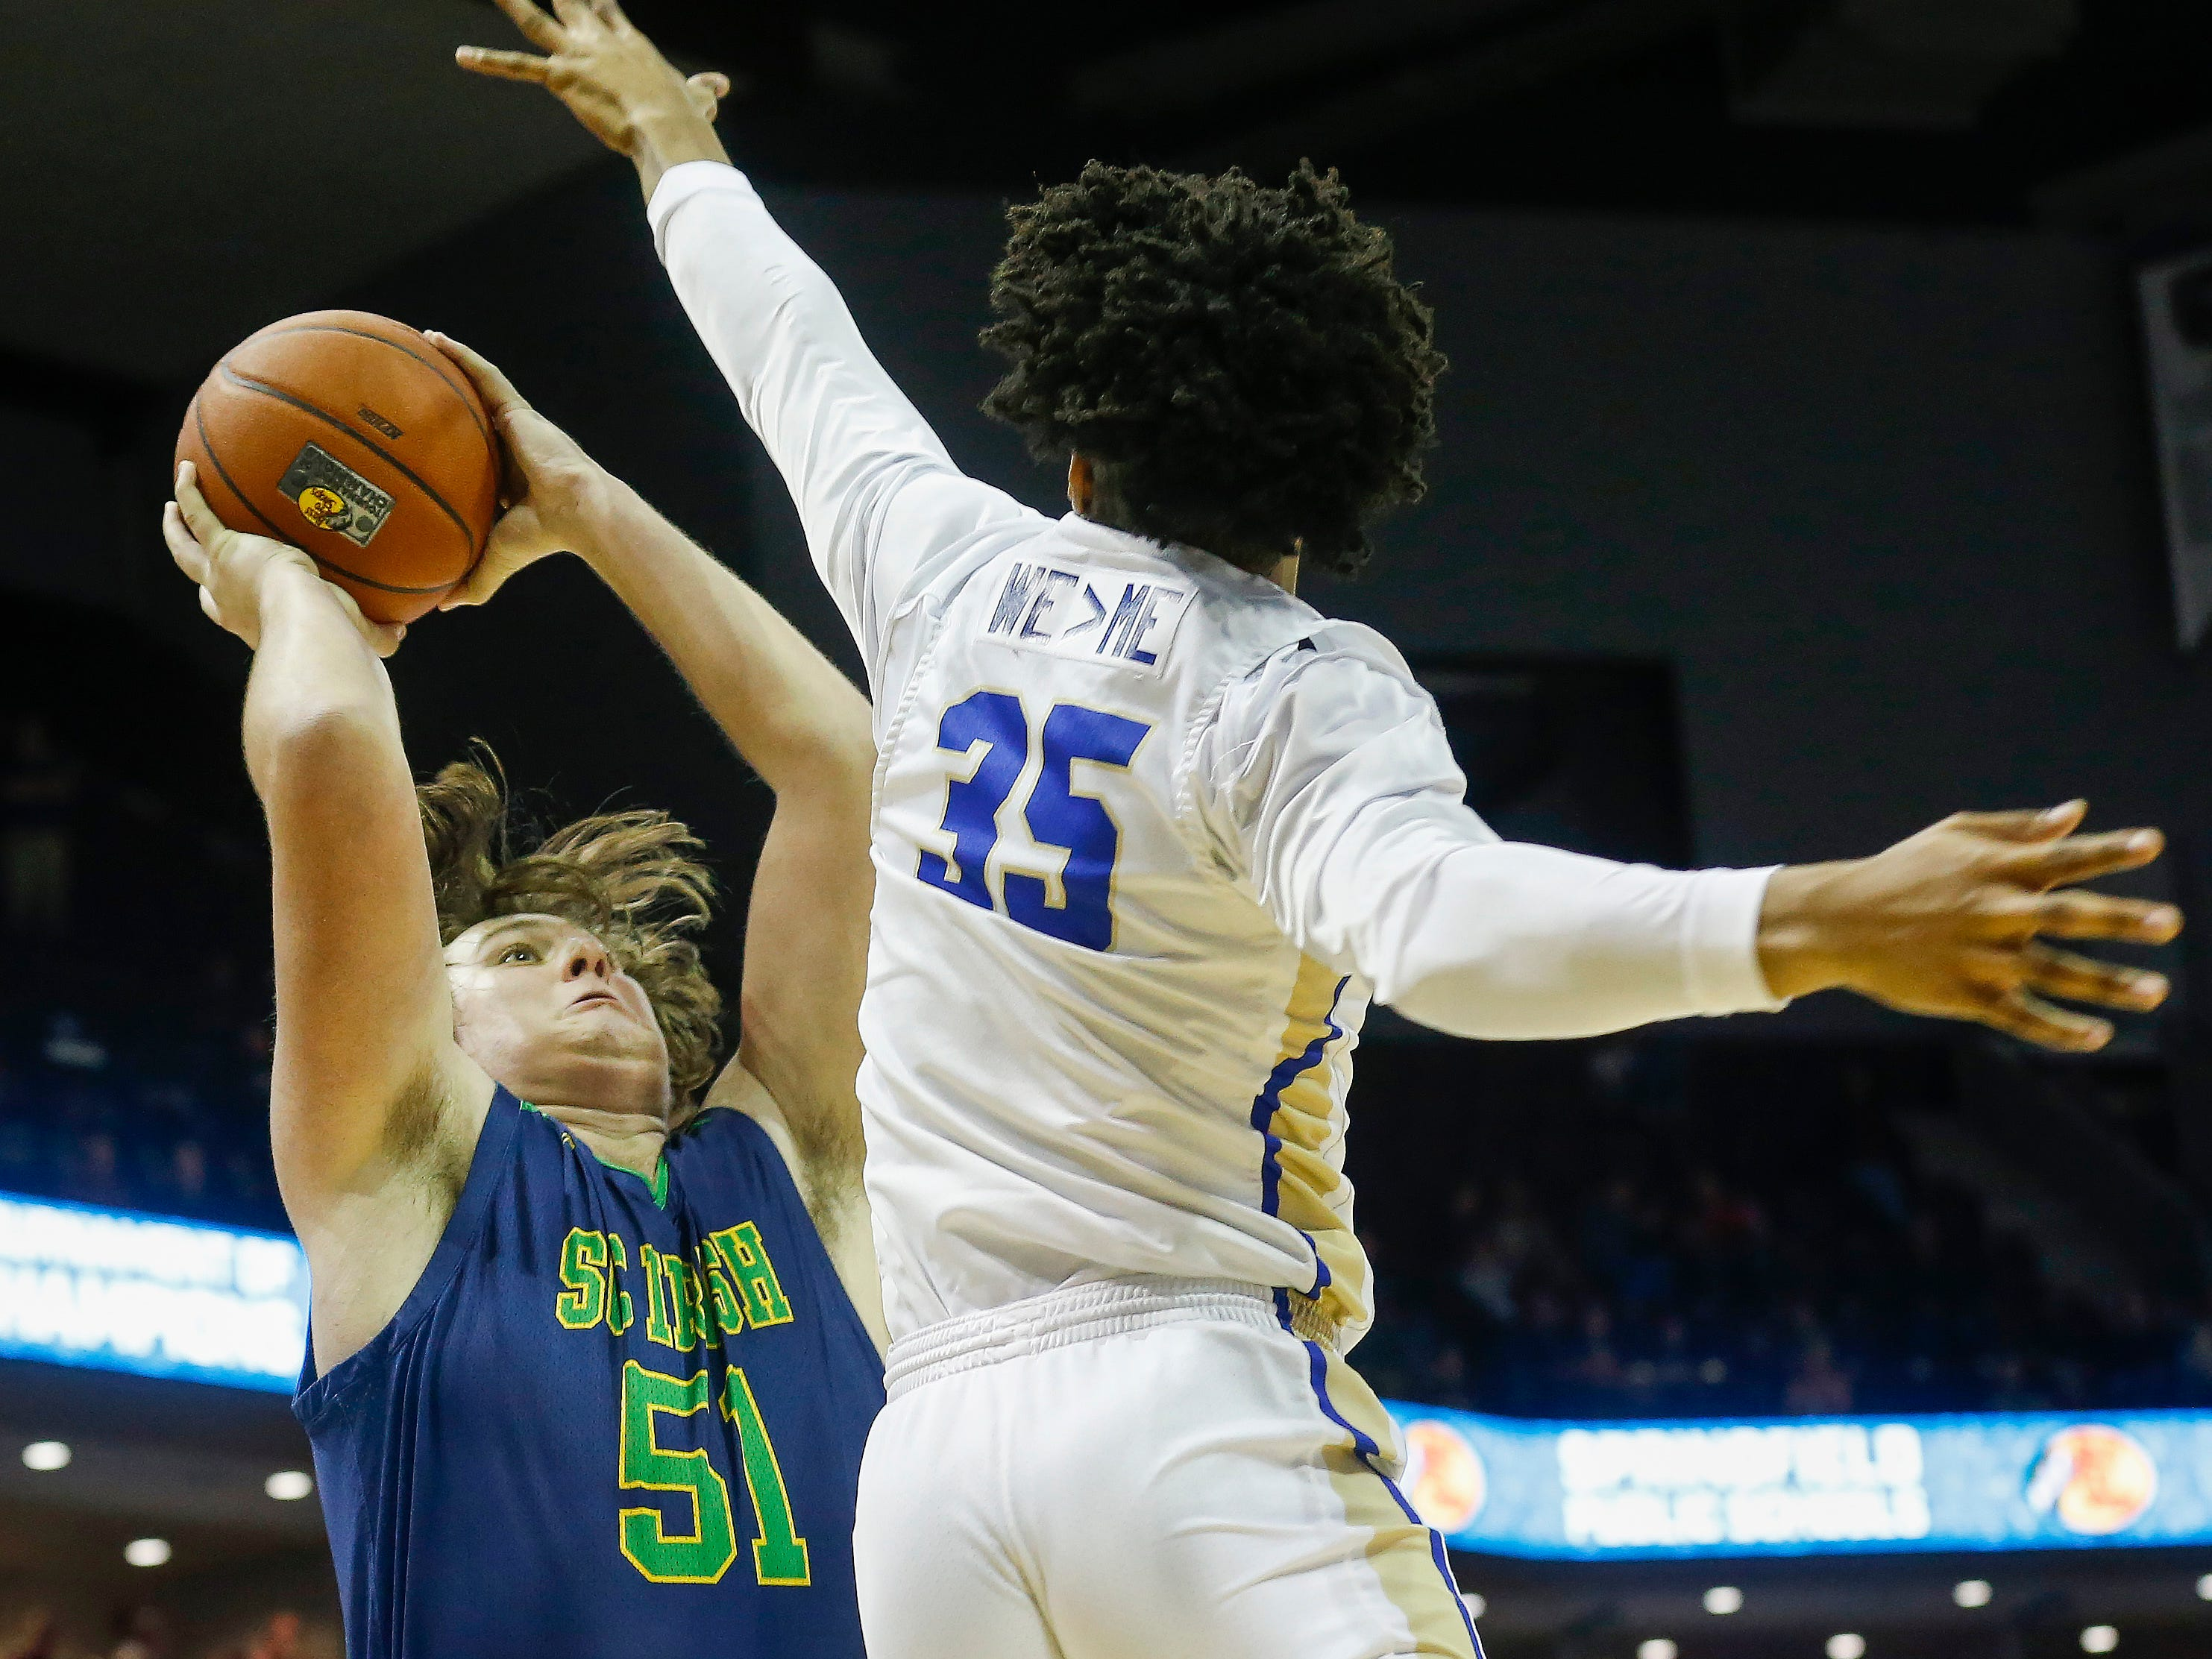 Wallace Squibb, of Springfield Catholic, shoots the ball during the Irish's  game against McEachern at the Bass Pro Shops Tournament of Champions at JQH Arena on Thursday, Jan. 17, 2019.